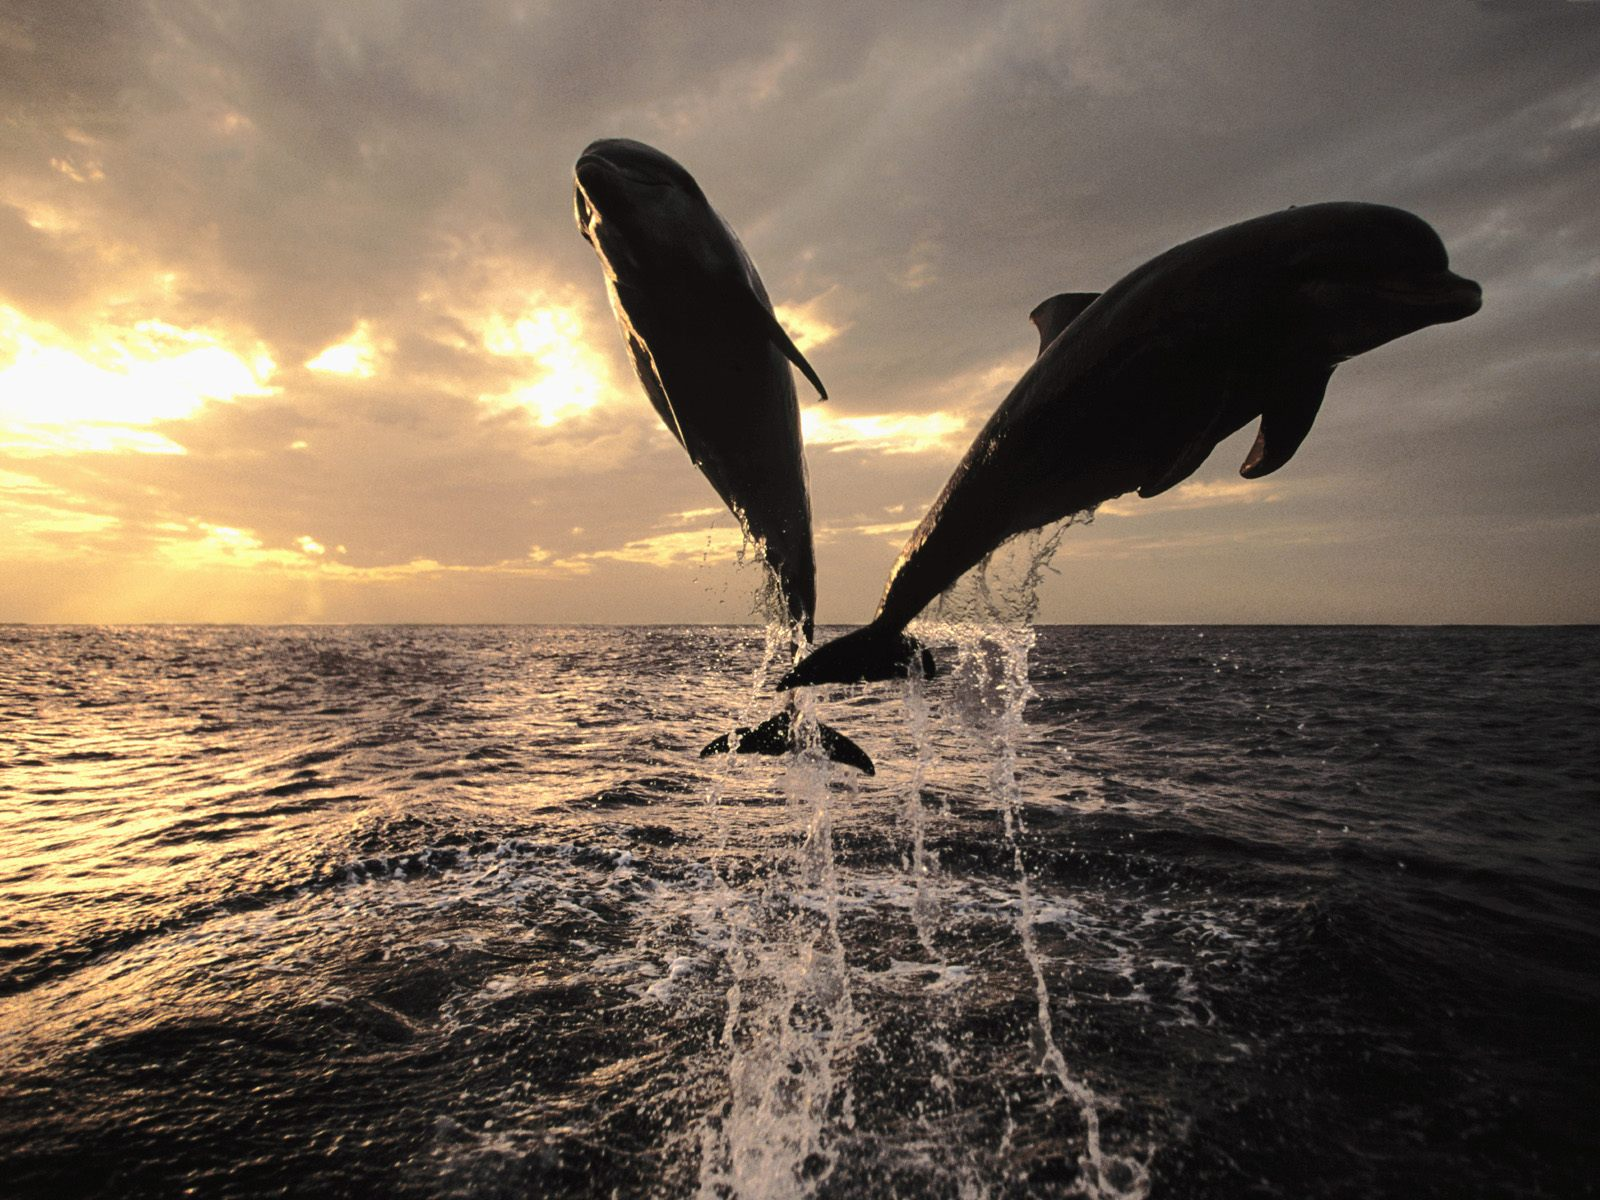 Dolphin Wallpaper Screensavers Pictures Videos and Site Seeing 1600x1200